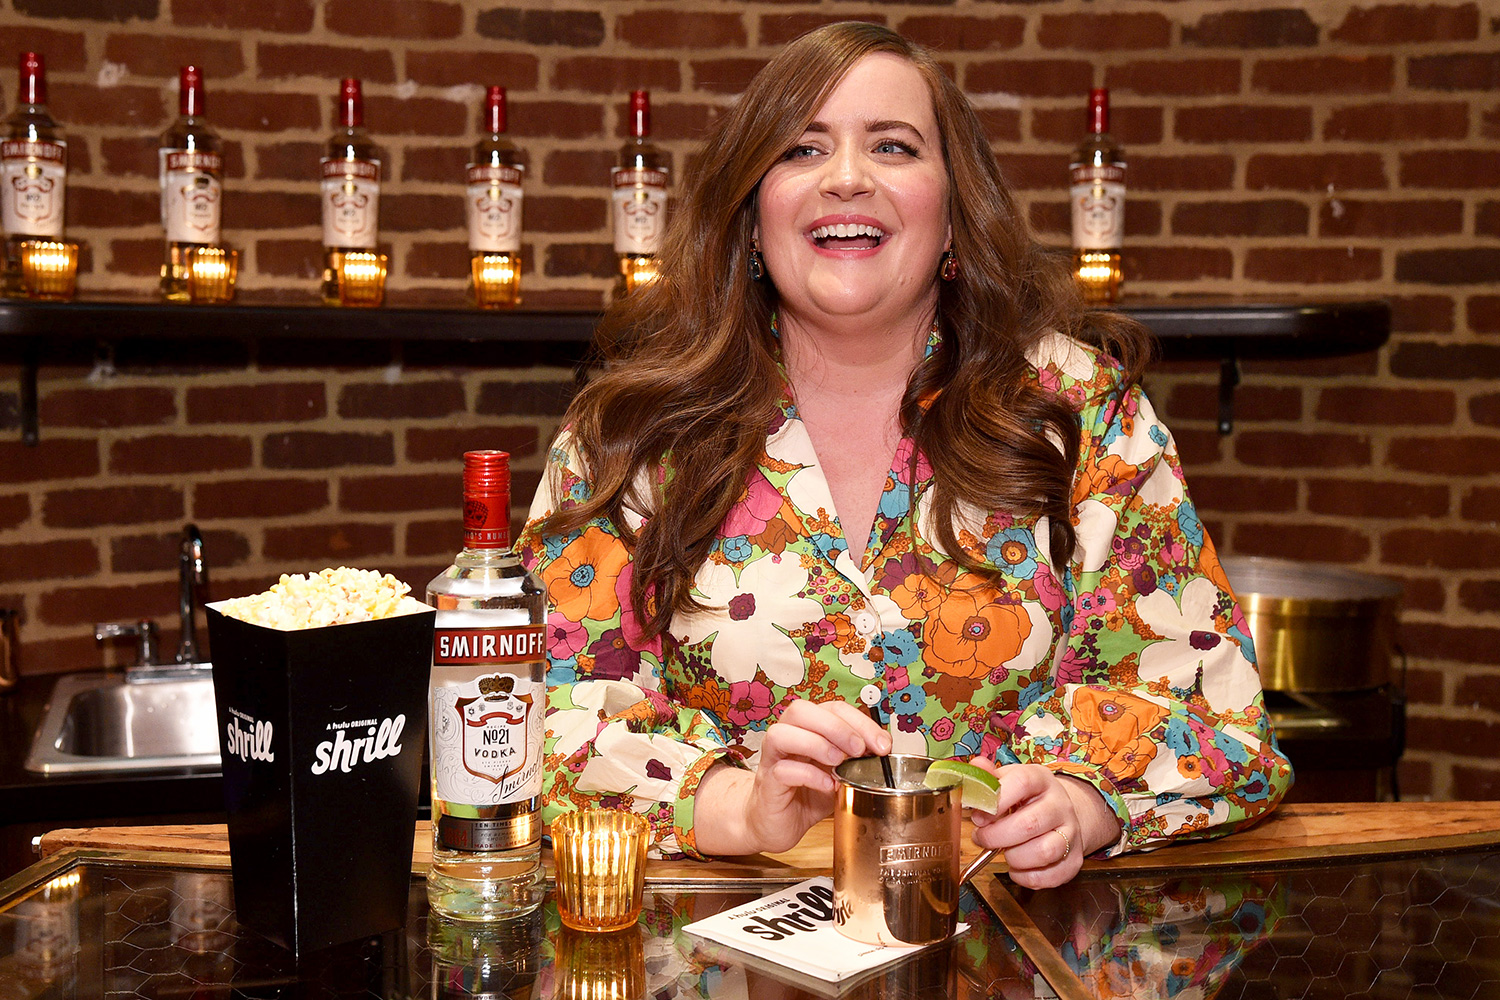 """Aidy Bryant celebrating the Season 2 premiere of """"Shrill"""" while enjoying a Smirnoff Moscow Mule on January 23, 2020 in New York City"""